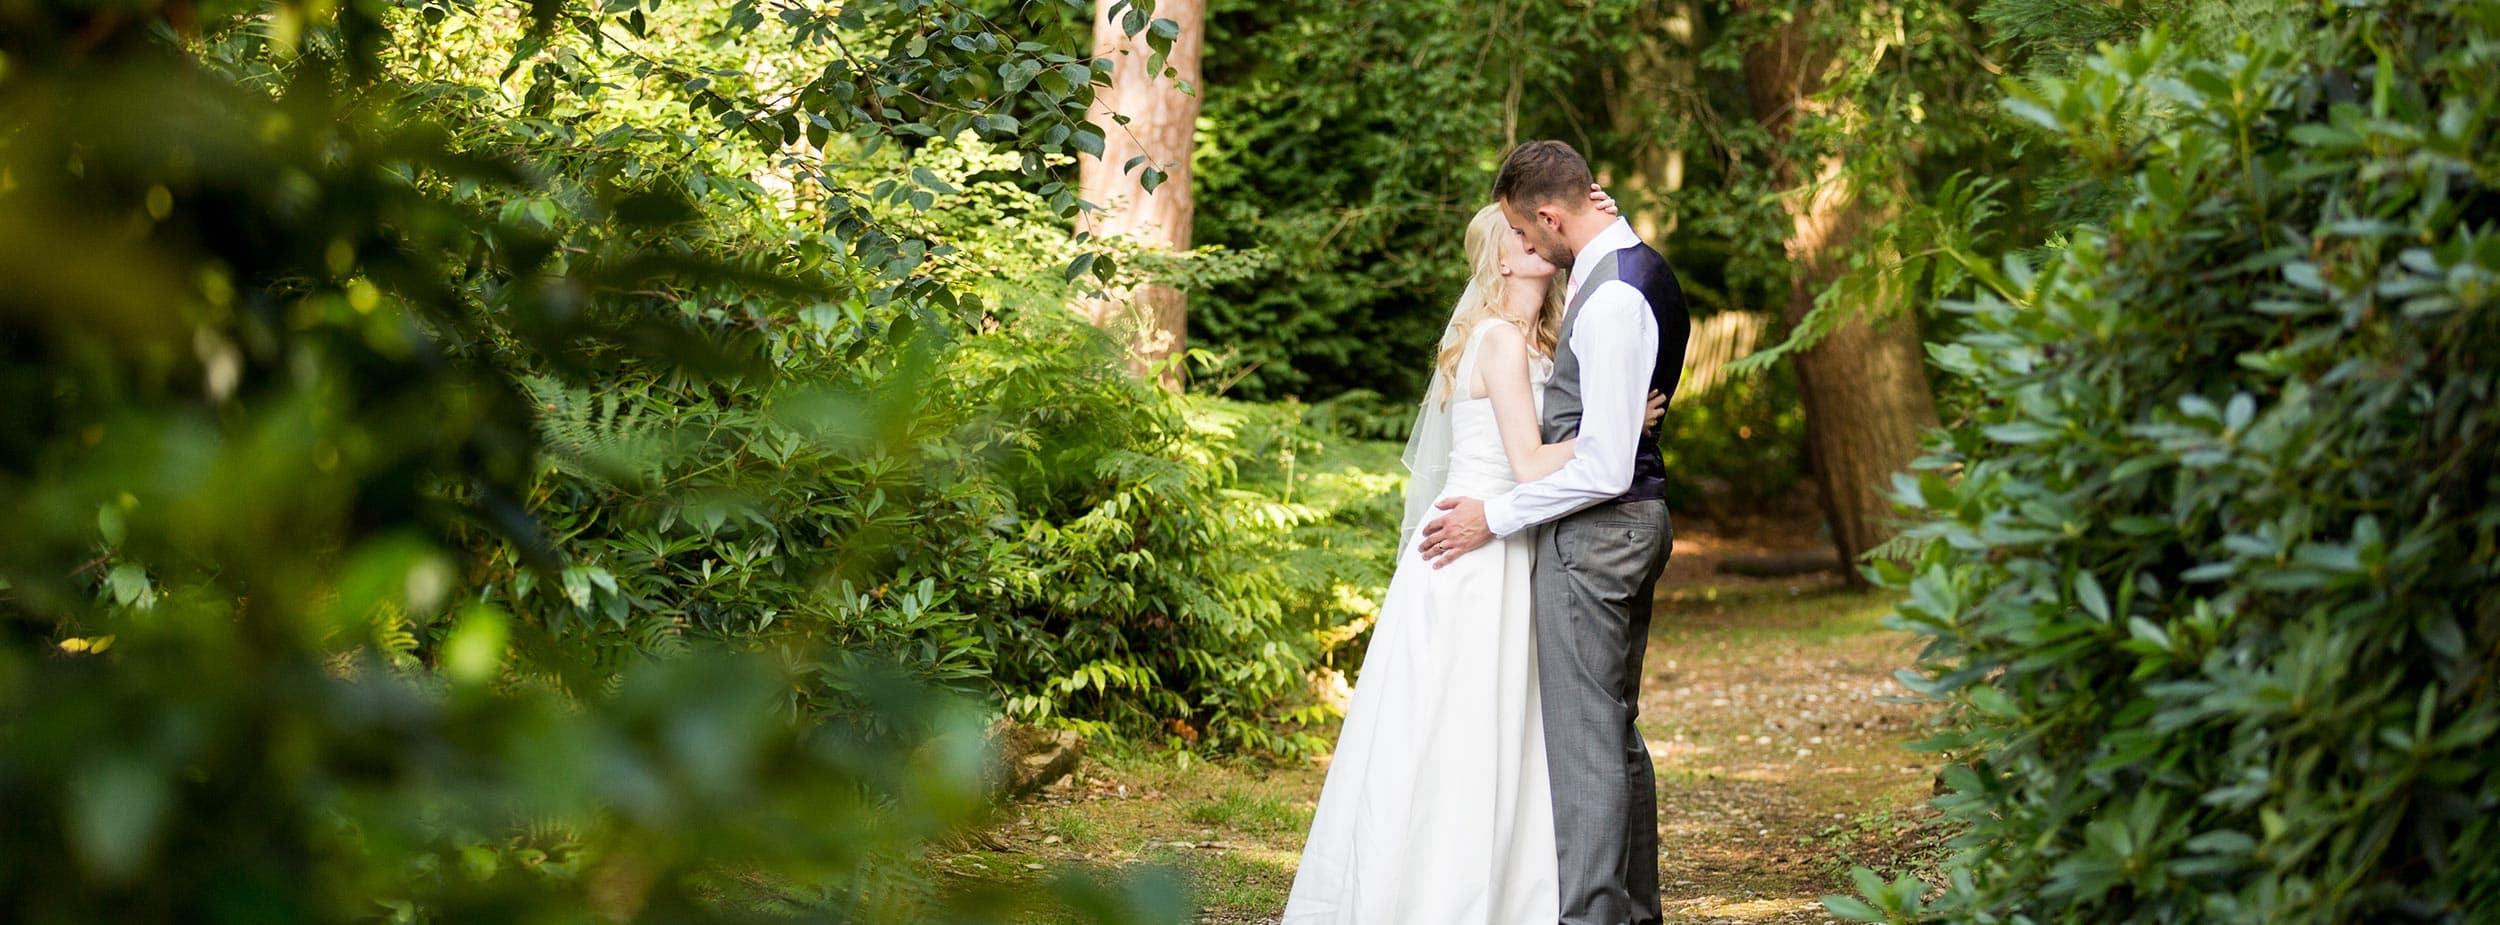 Wedding Photography Sutton London